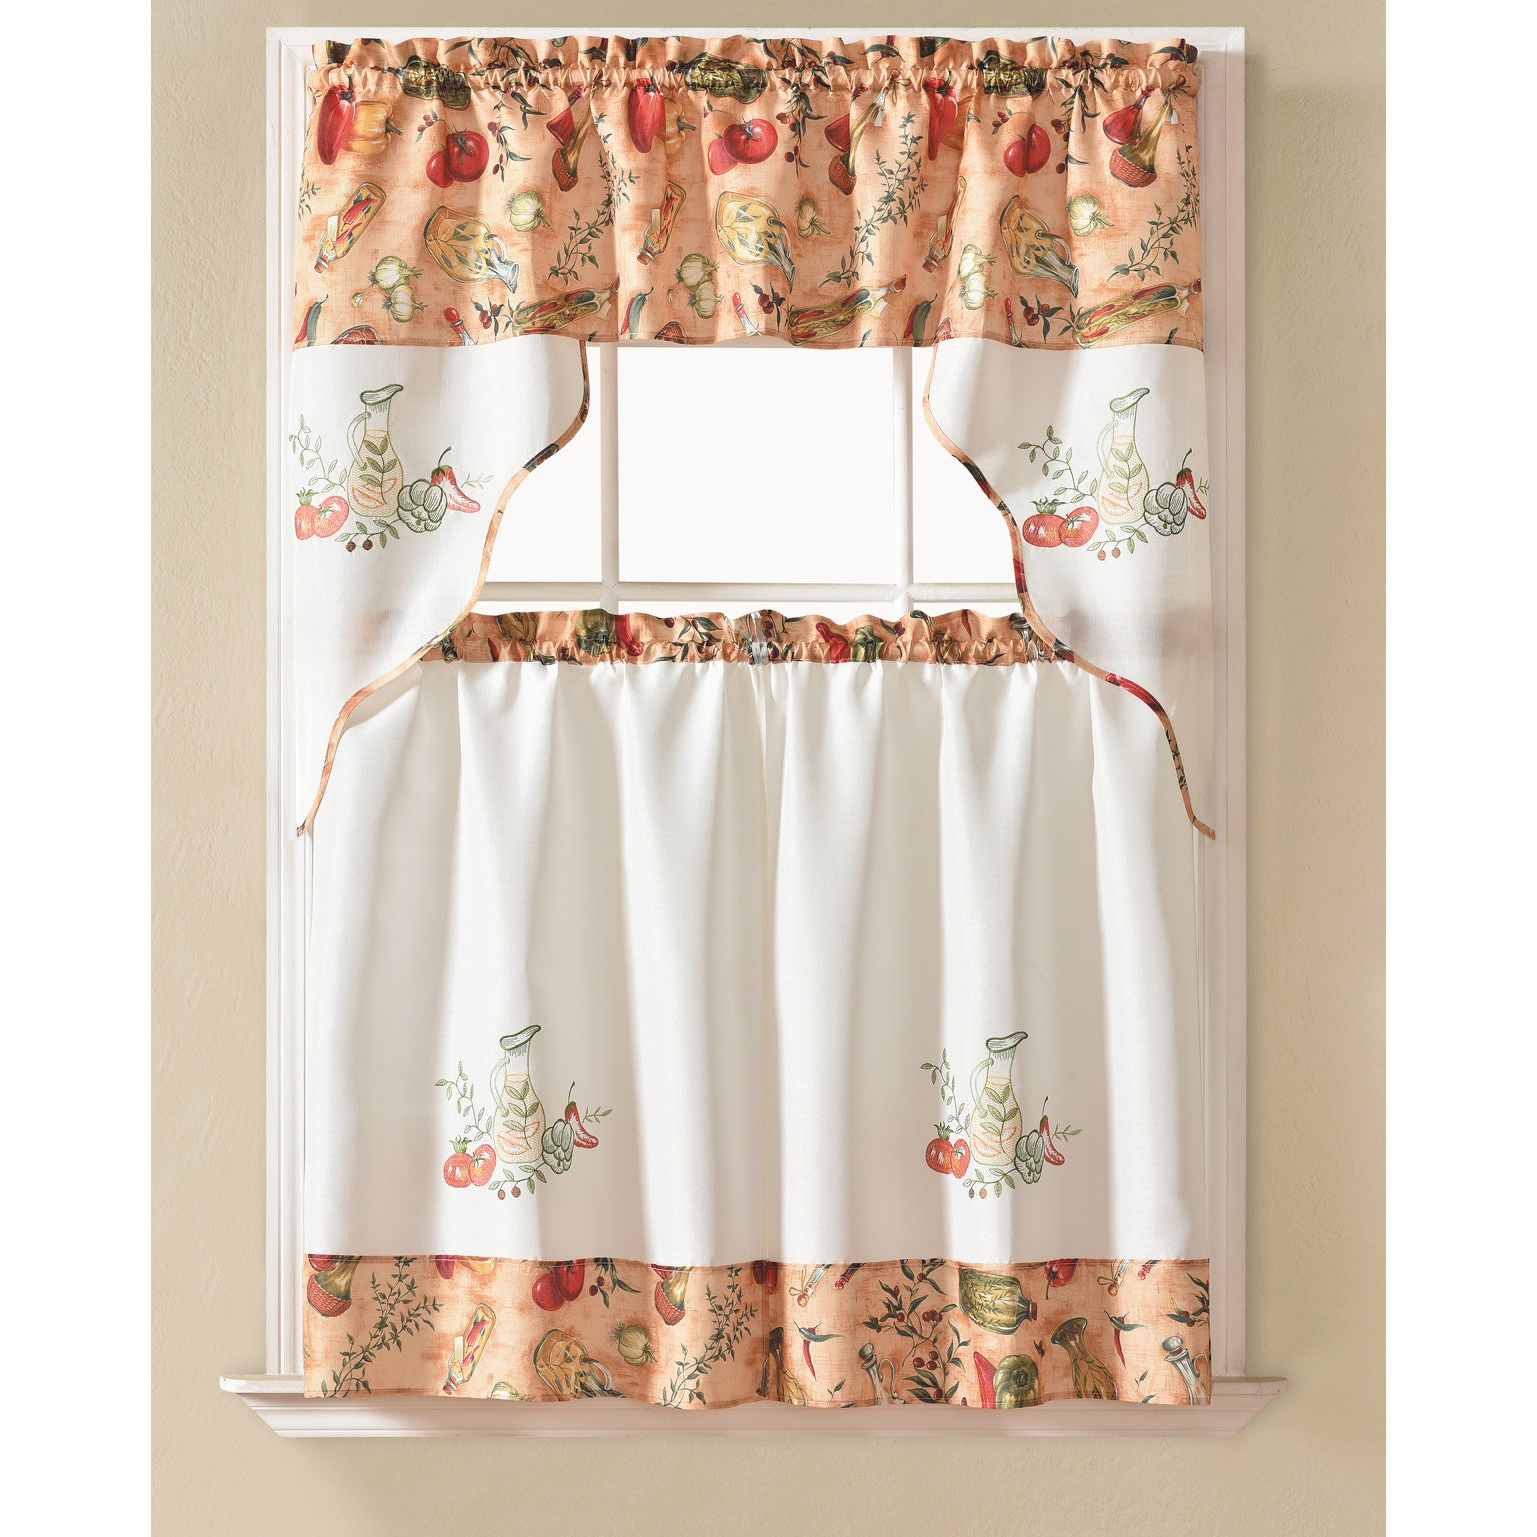 Preferred Rt Designers Collection Urban Embroidered Tier And Valance Kitchen Curtain  Tier Set In Delicious Apples Kitchen Curtain Tier And Valance Sets (View 18 of 20)